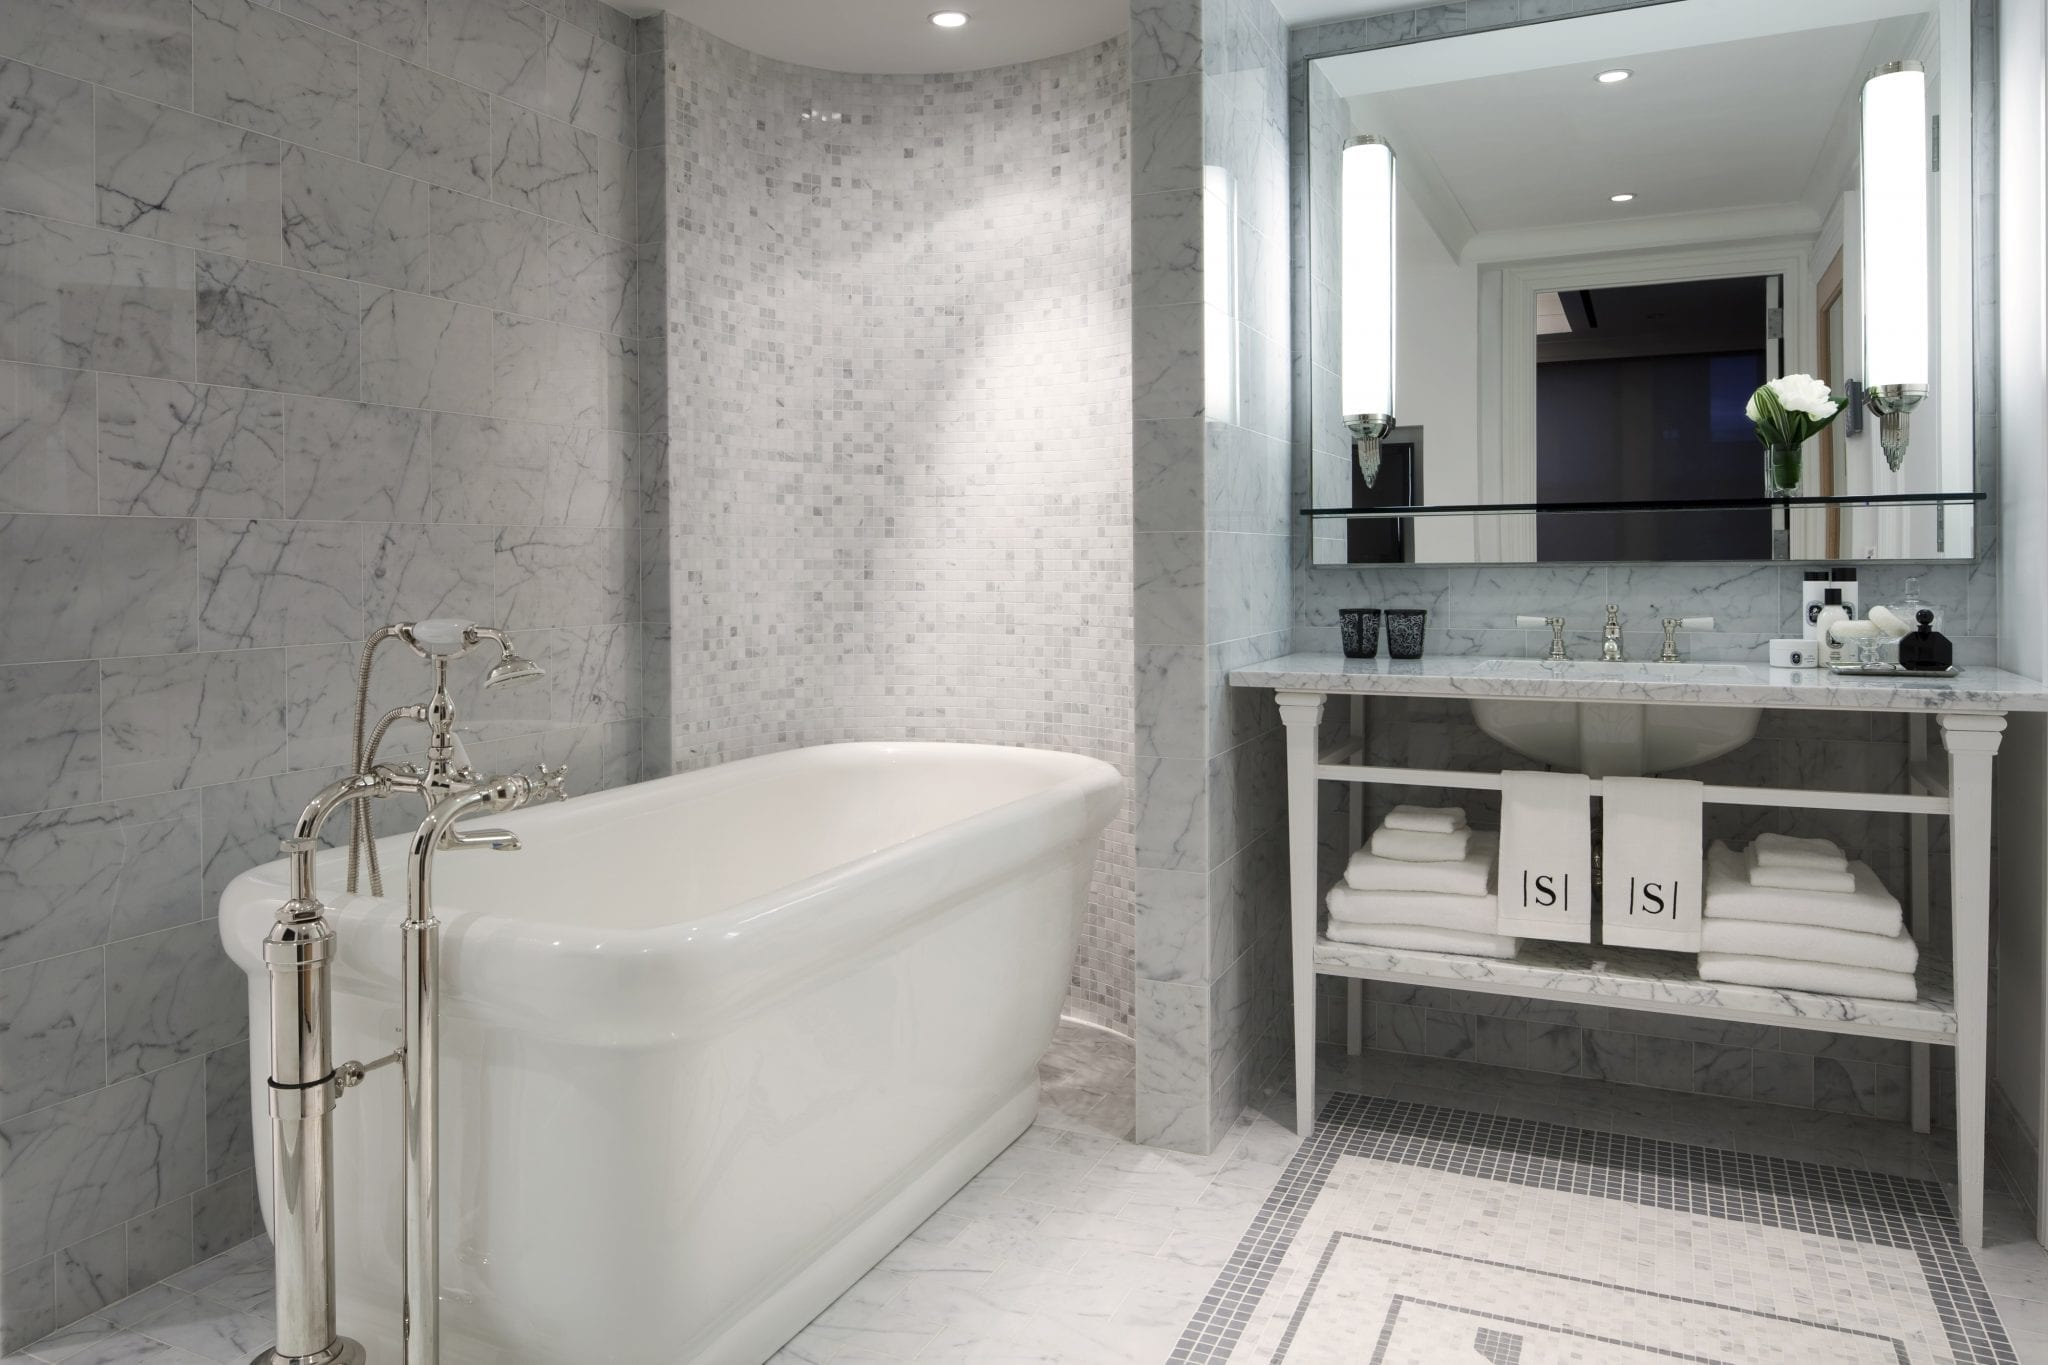 The Presidential Suite's Bathroom, inside The Surrey Hotel A large white basin bathtub is placed aside from the marble sink. A large mirror hangs on back wall, with complimentary toiletries. Towels are neatly stacked on the shelves below. Photo by Tom McWilliam.